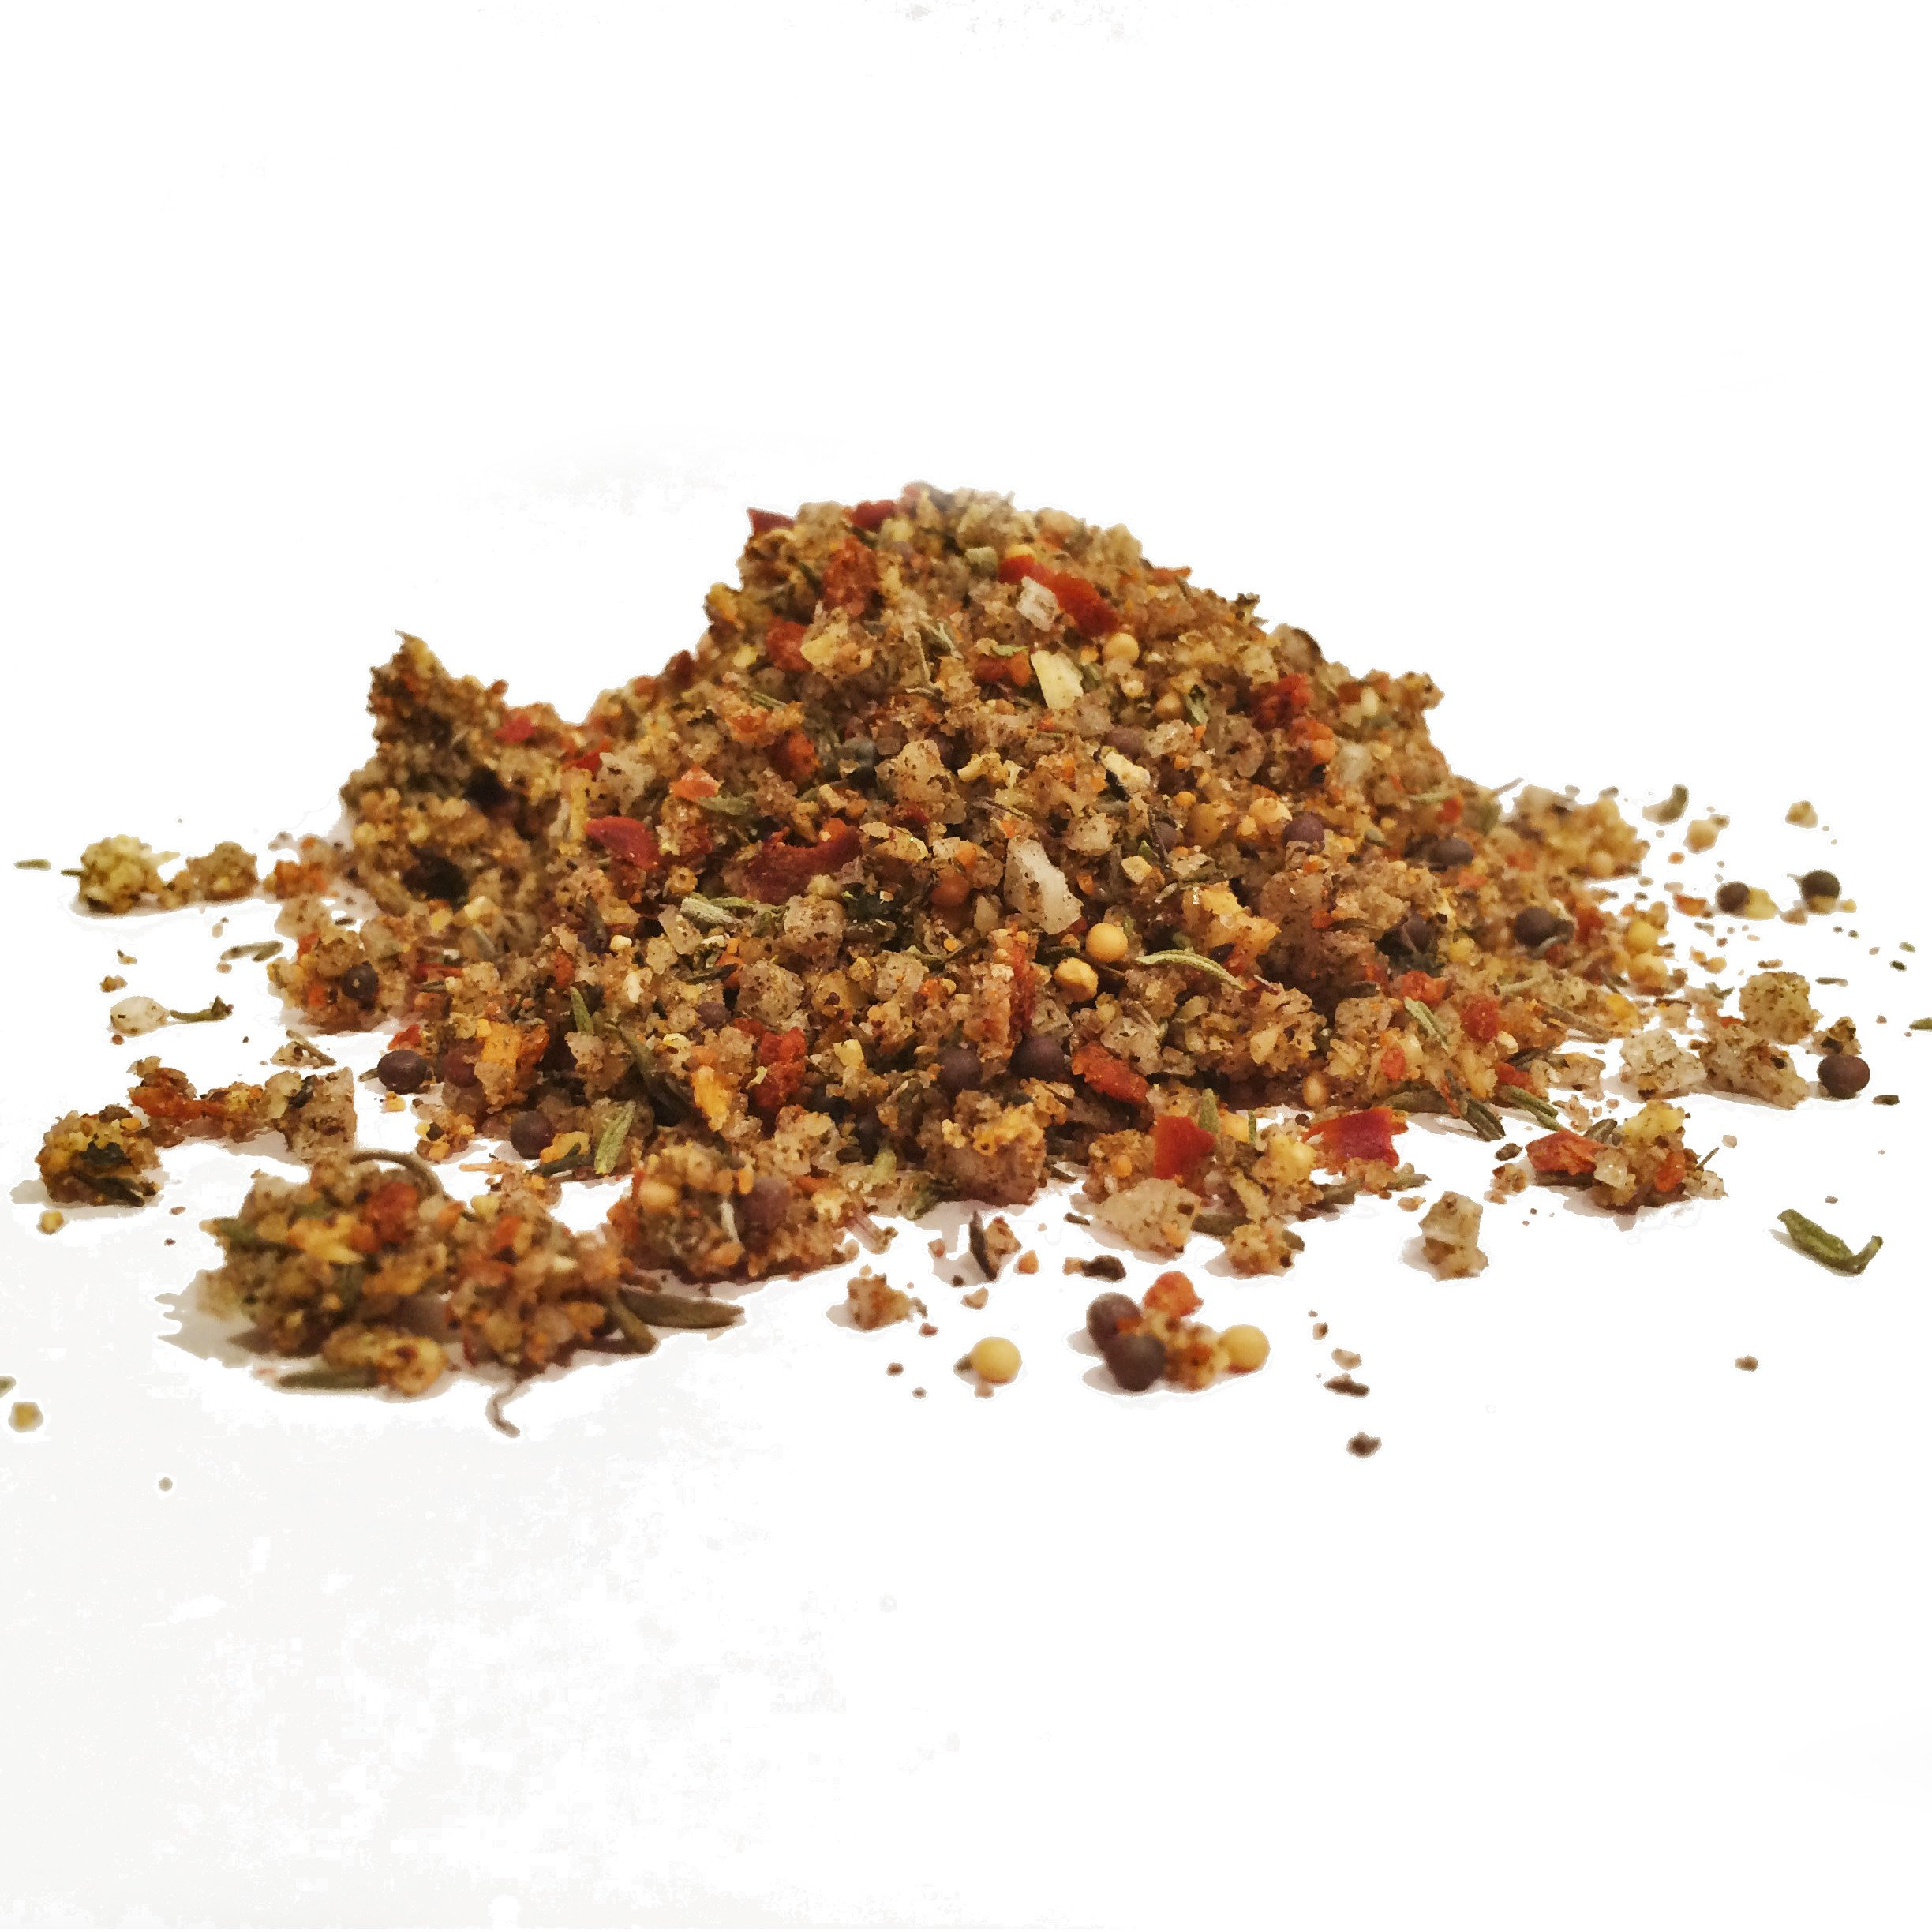 World Spice Merchants - Voodoo, 8 oz. Bag